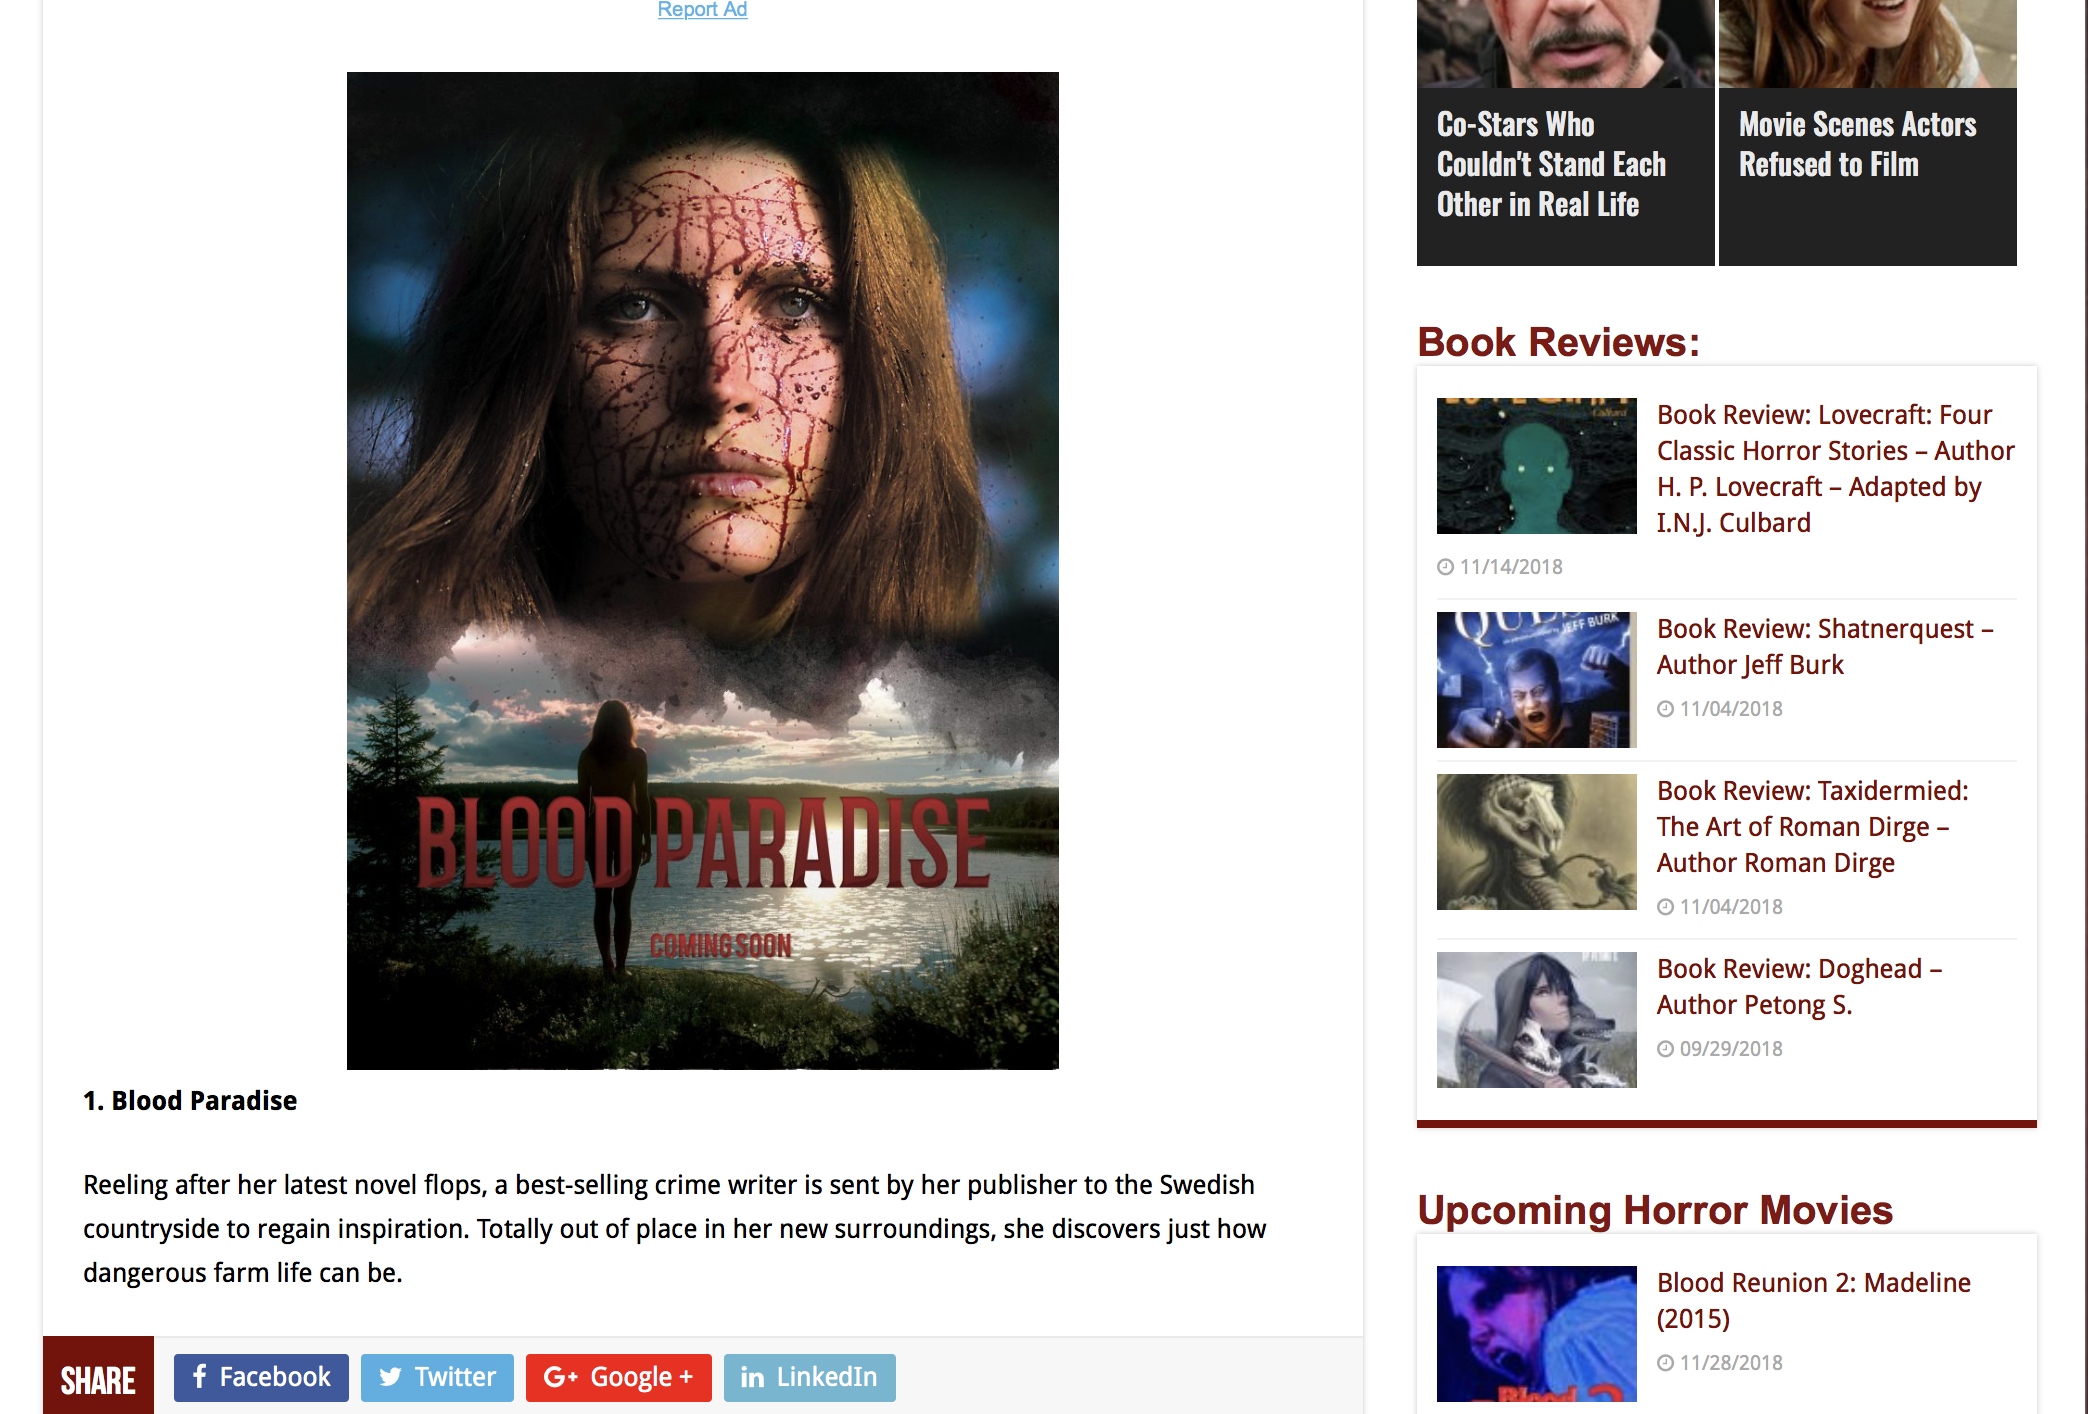 HORROWNEWS.NET - We have a brand new batch of independent horror movies coming our way in 2019 and here are ten of them that we need to keep a close eye on…